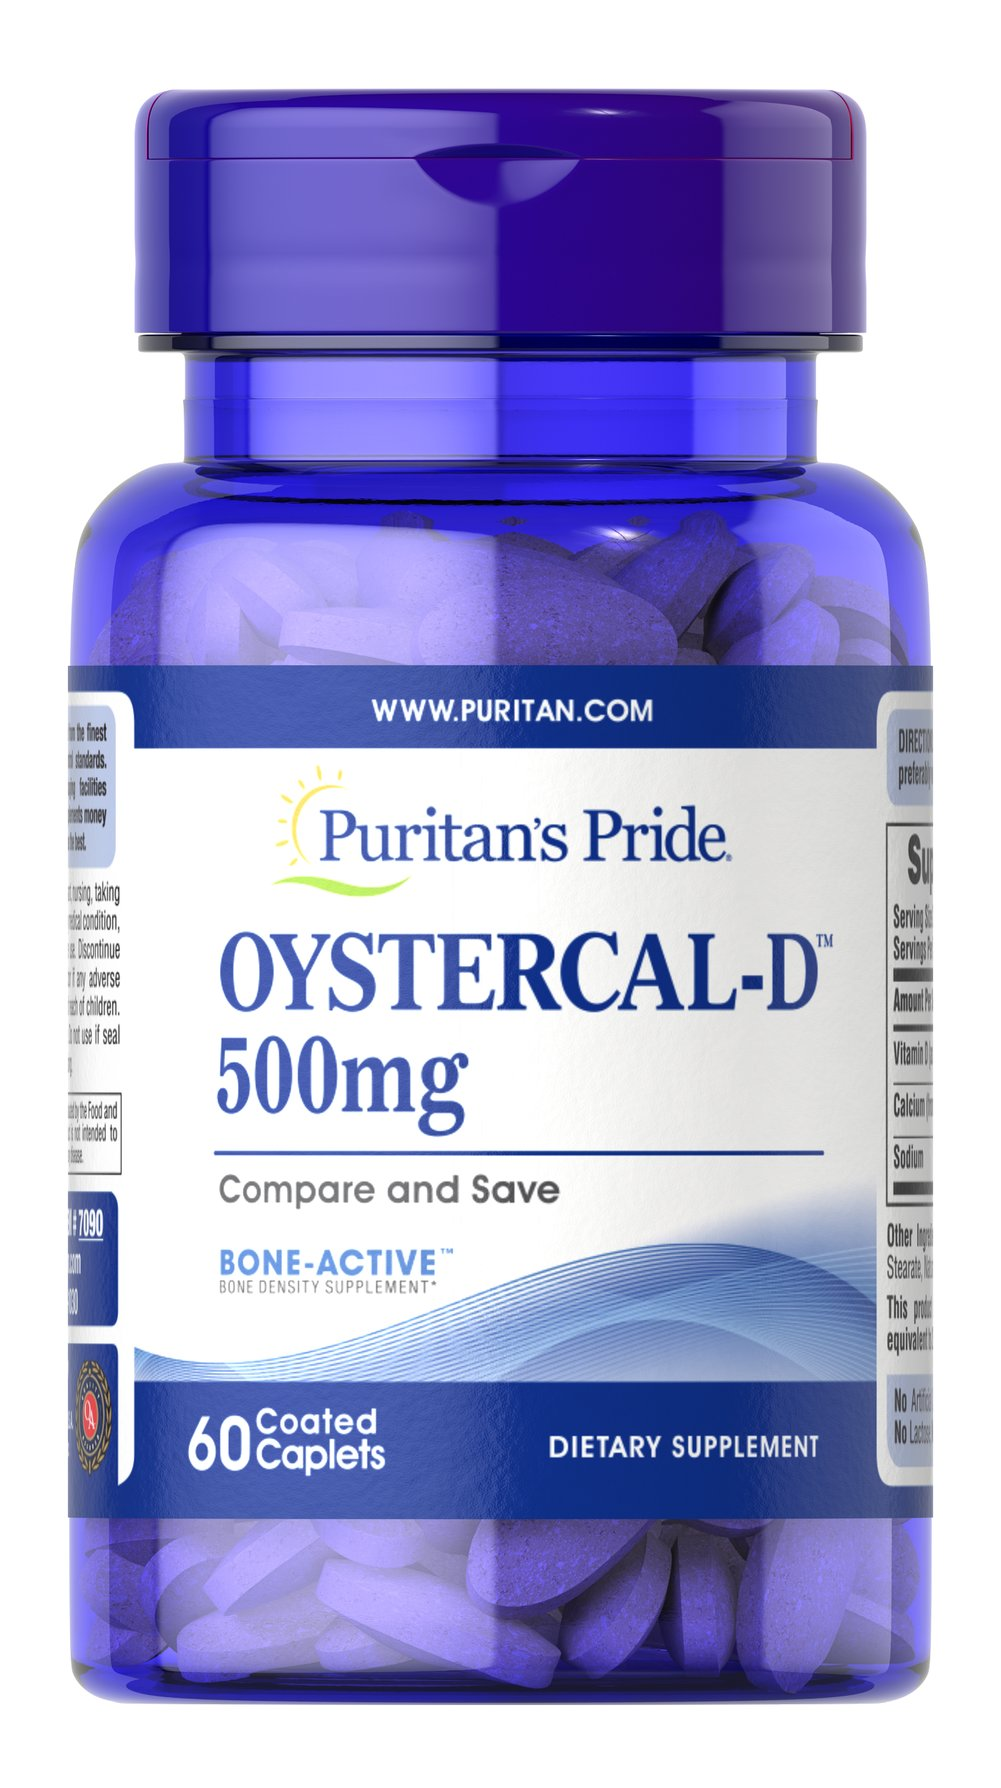 Oystercal-D™ 500 mg <p>It's time to bone-up on bone health! Our Oyster-Cal formula is a good choice for helping your maintain bone health.** It's sourced from oyster shells and delivers 1,000 mg of Calcium per serving, with the added value of Vitamin D to assist with absorption.**</p> 60 Caplets 500 mg $4.99